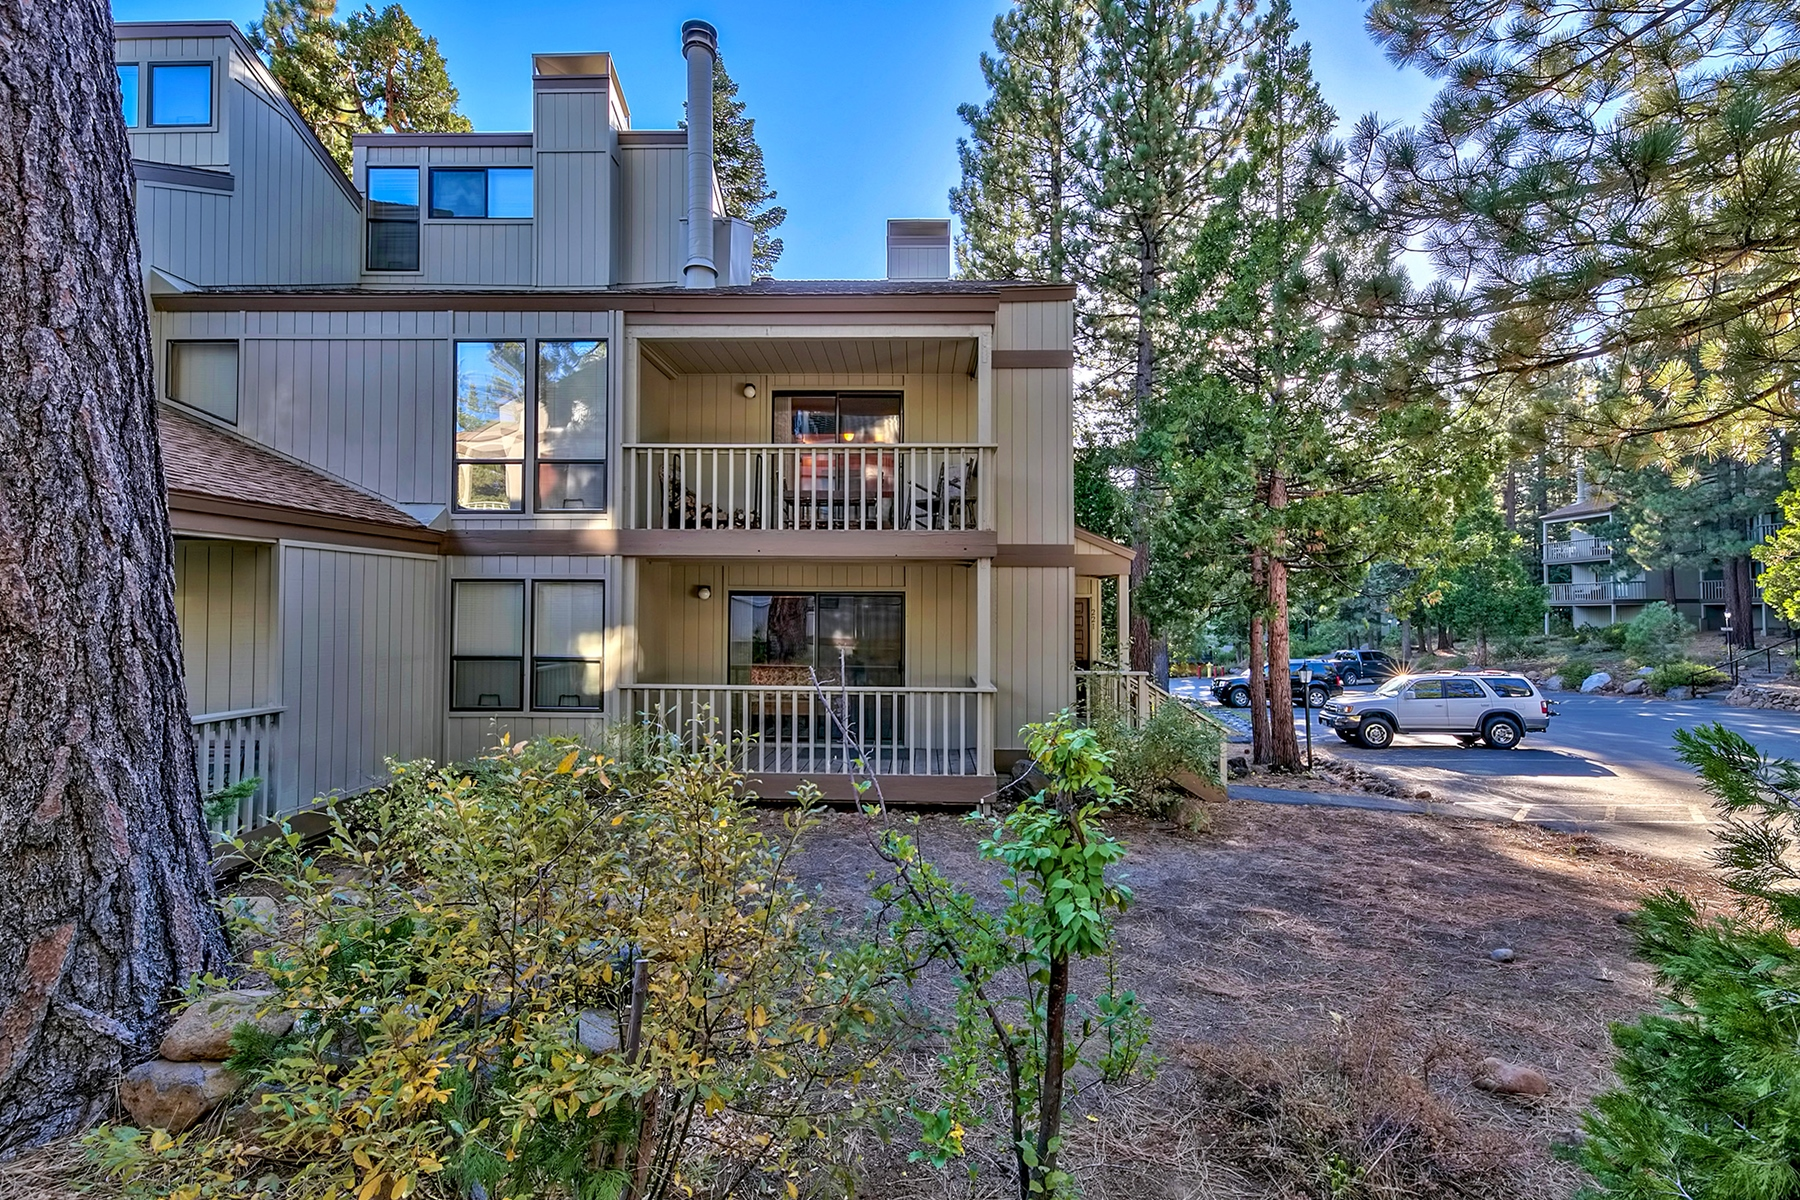 Additional photo for property listing at 1001 Commonwealth. Drive #221, Kings Beach, CA 1001 Commonwealth Drive #221 Kings Beach, California 96143 United States